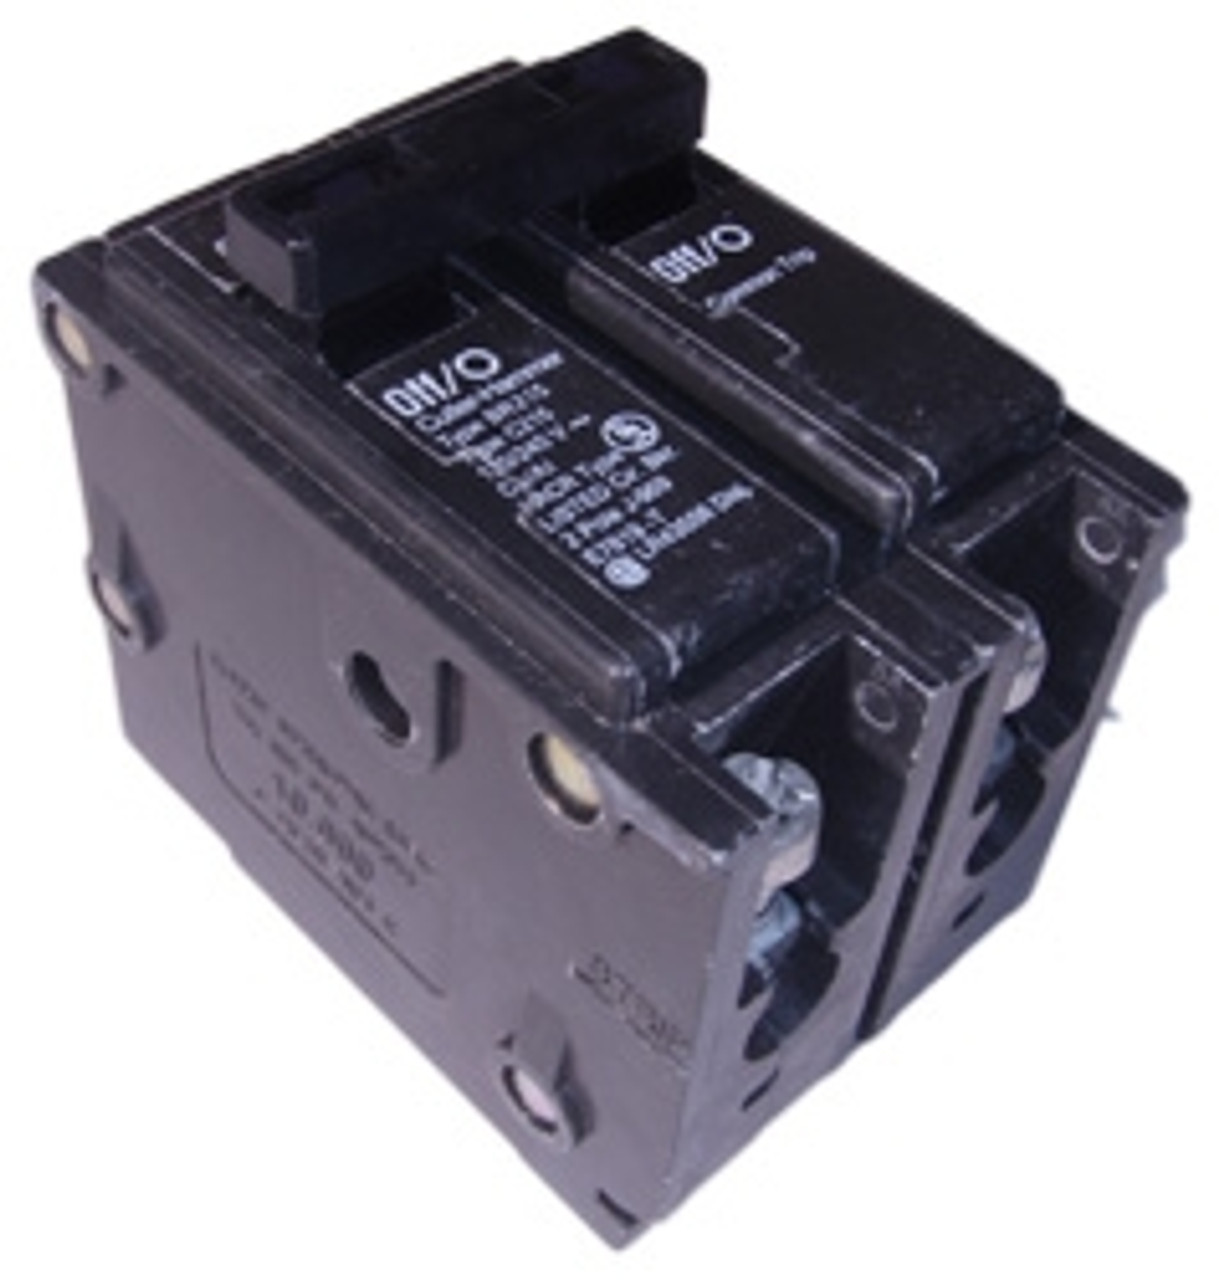 Cutler Hammer BR215 2 Pole 15 Amp 240VAC Circuit Breaker - New Pullout